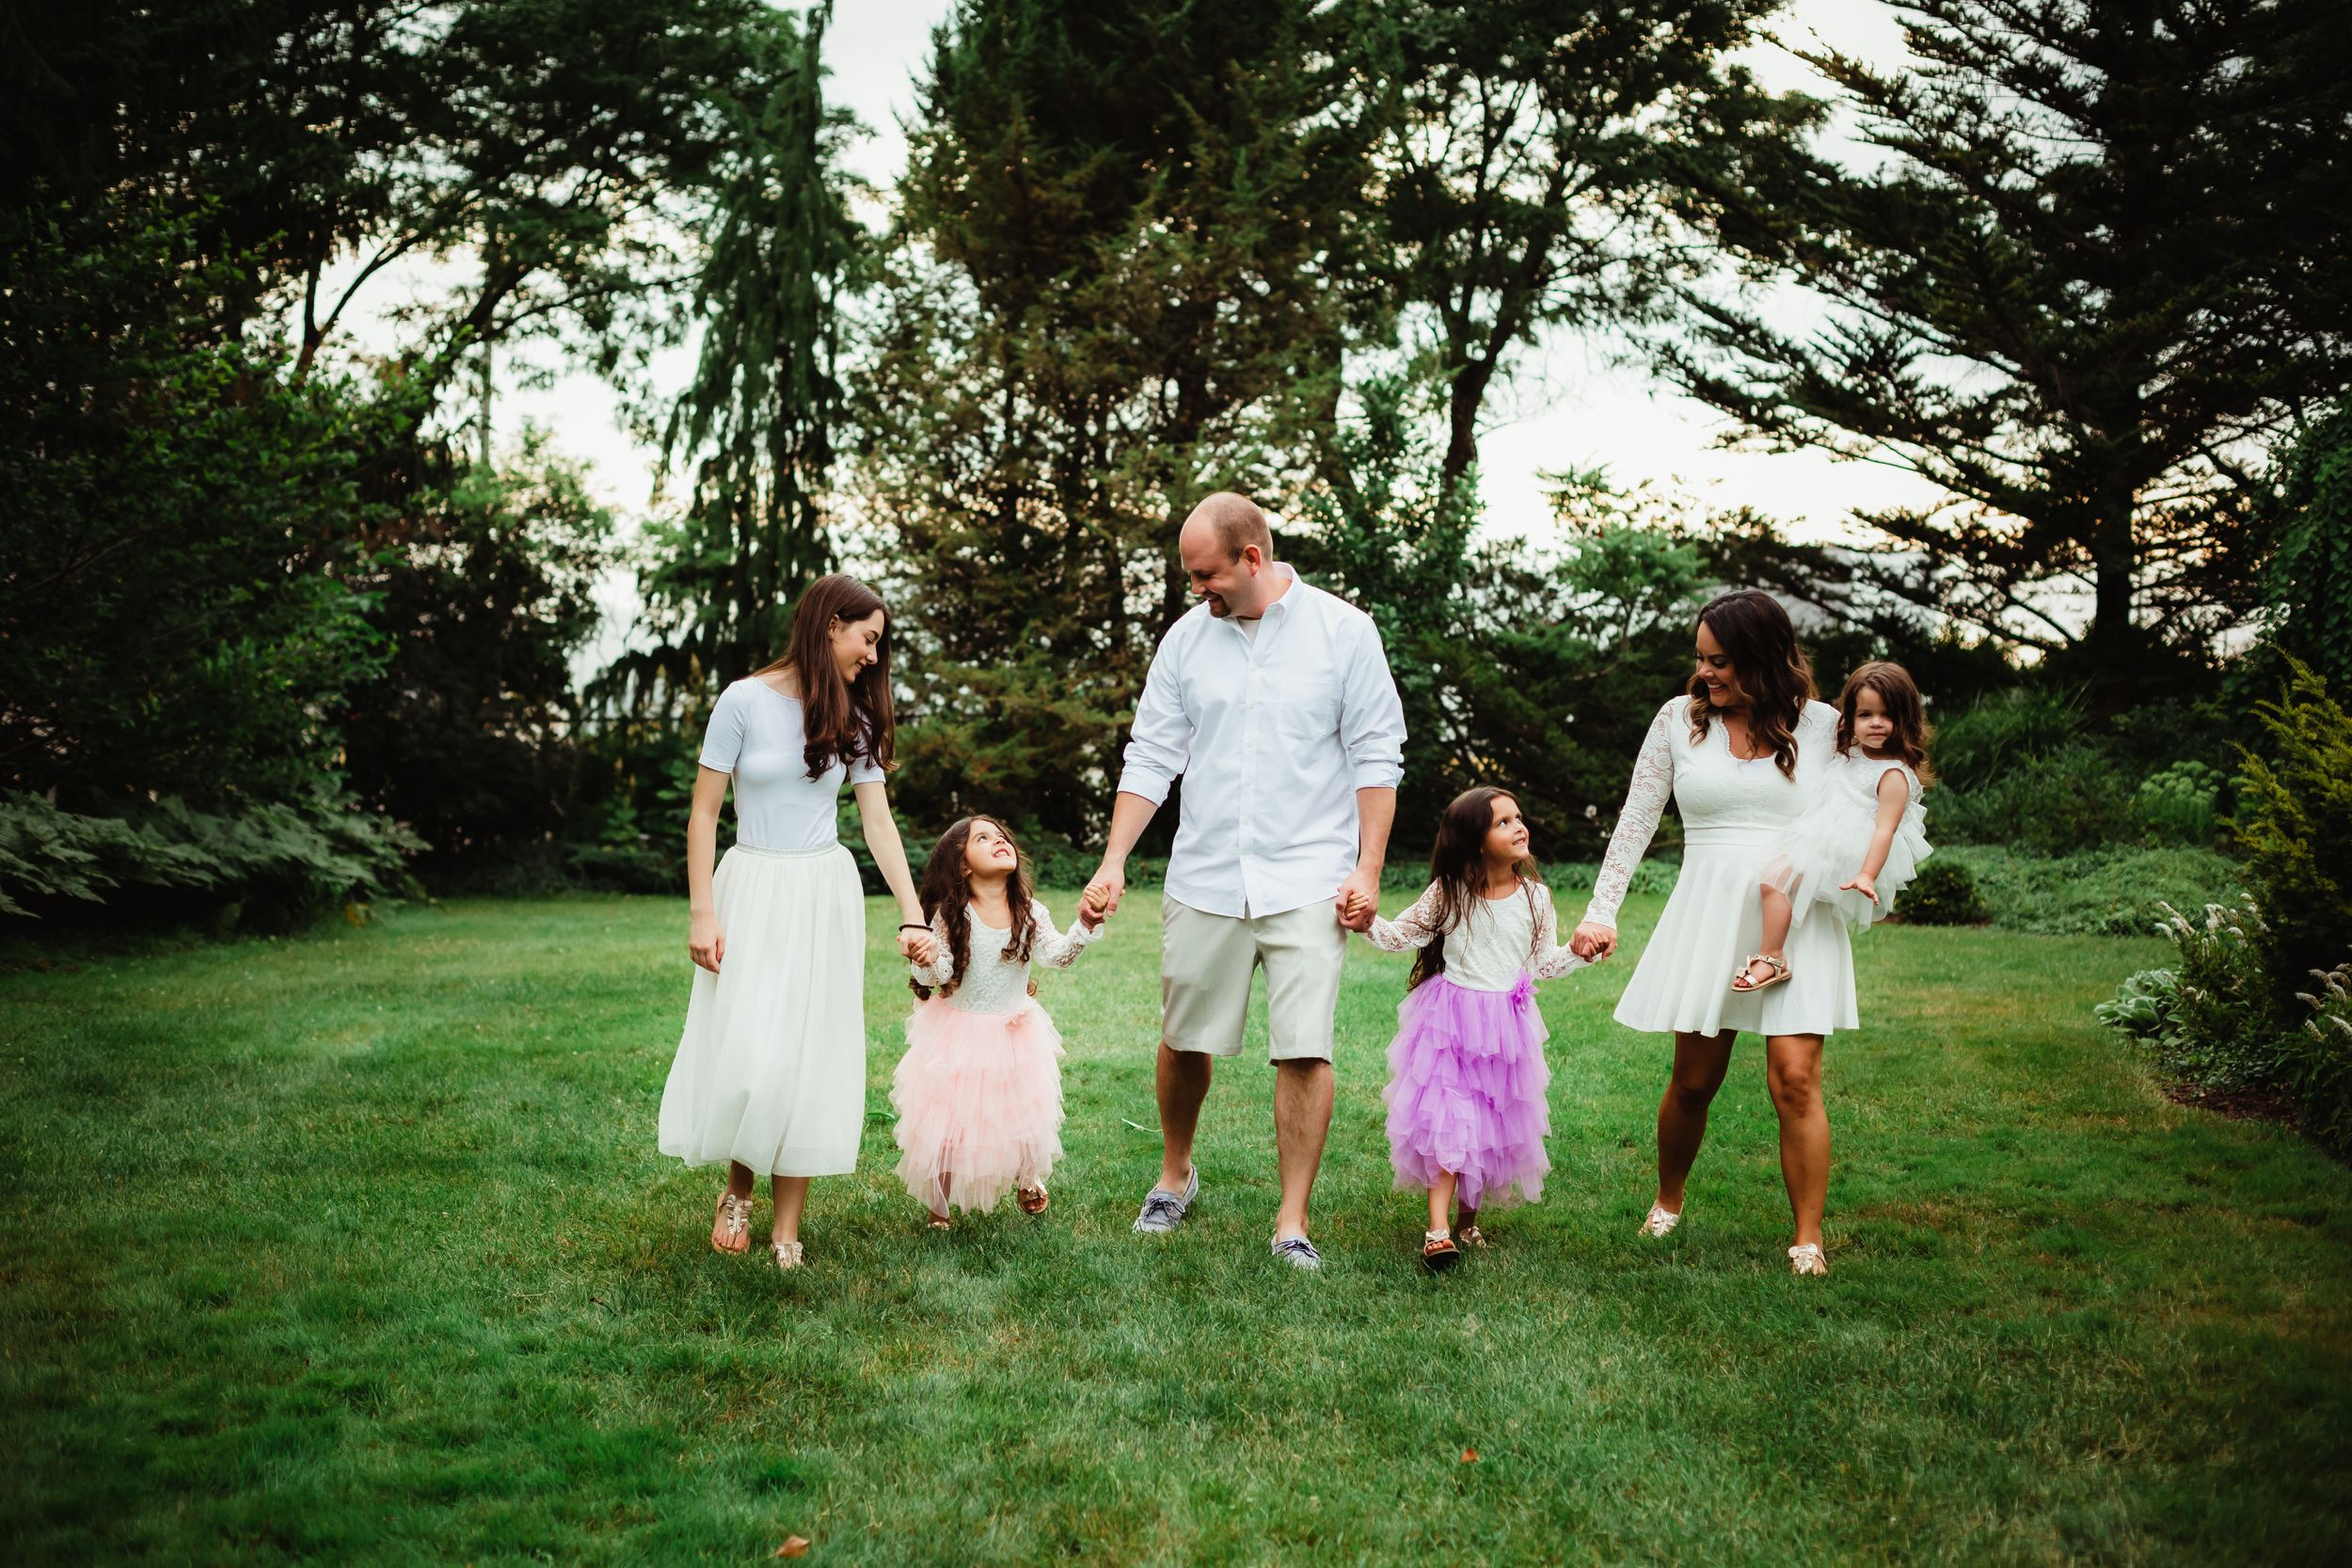 A family with four daughters of various ages holding hands walking through Cooley Gardens.